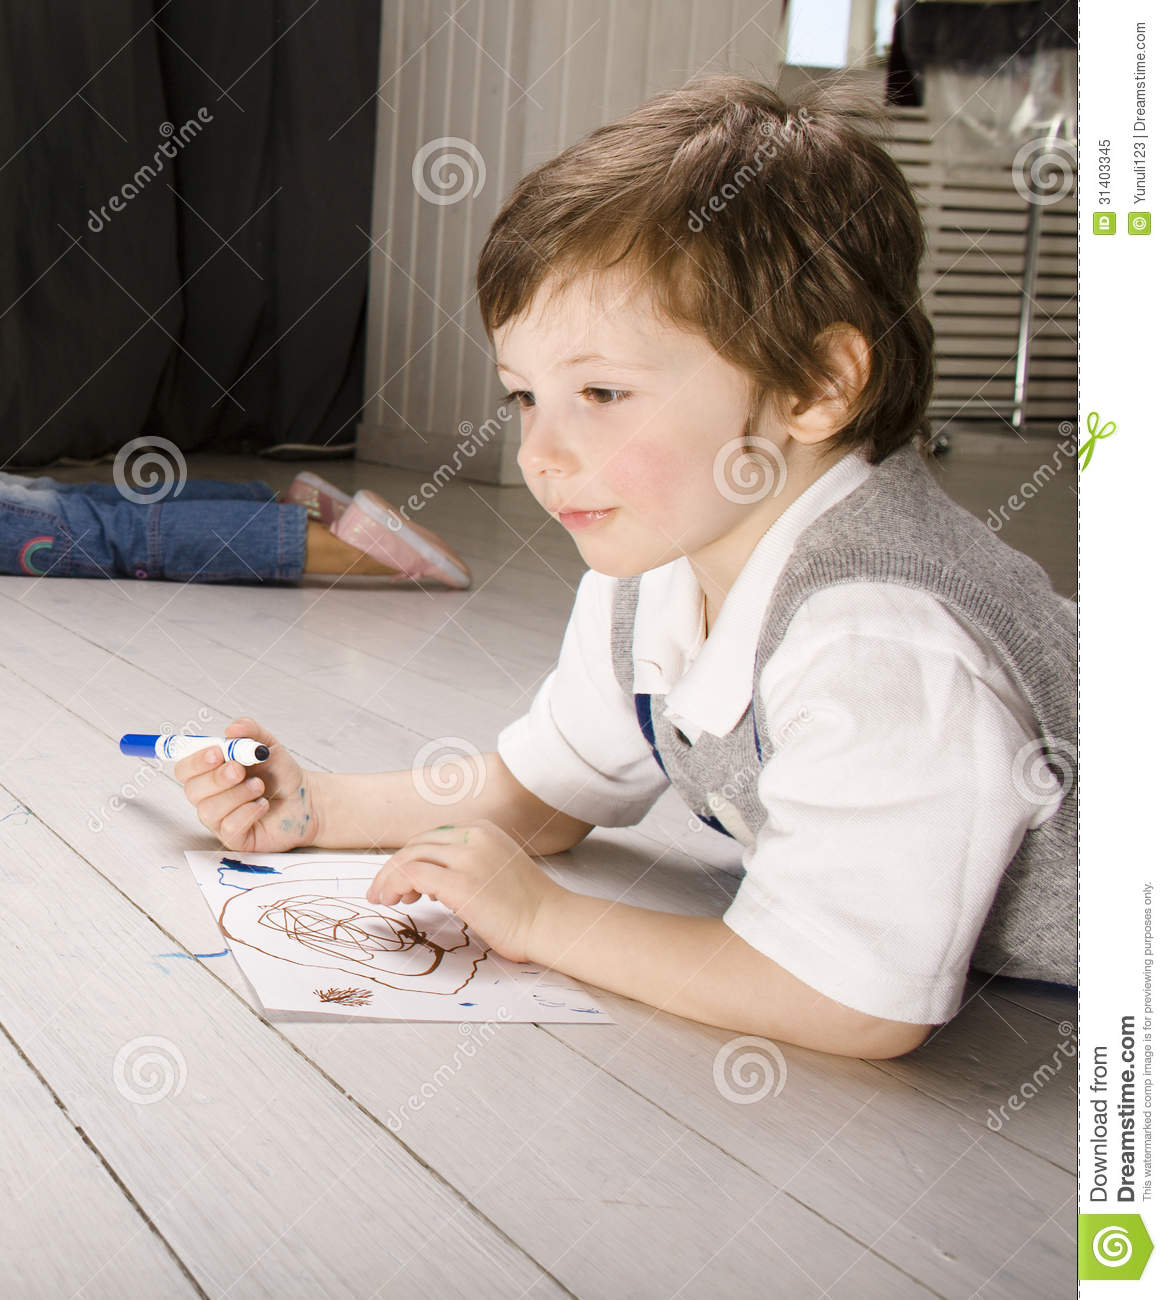 Small chubby boys in painting